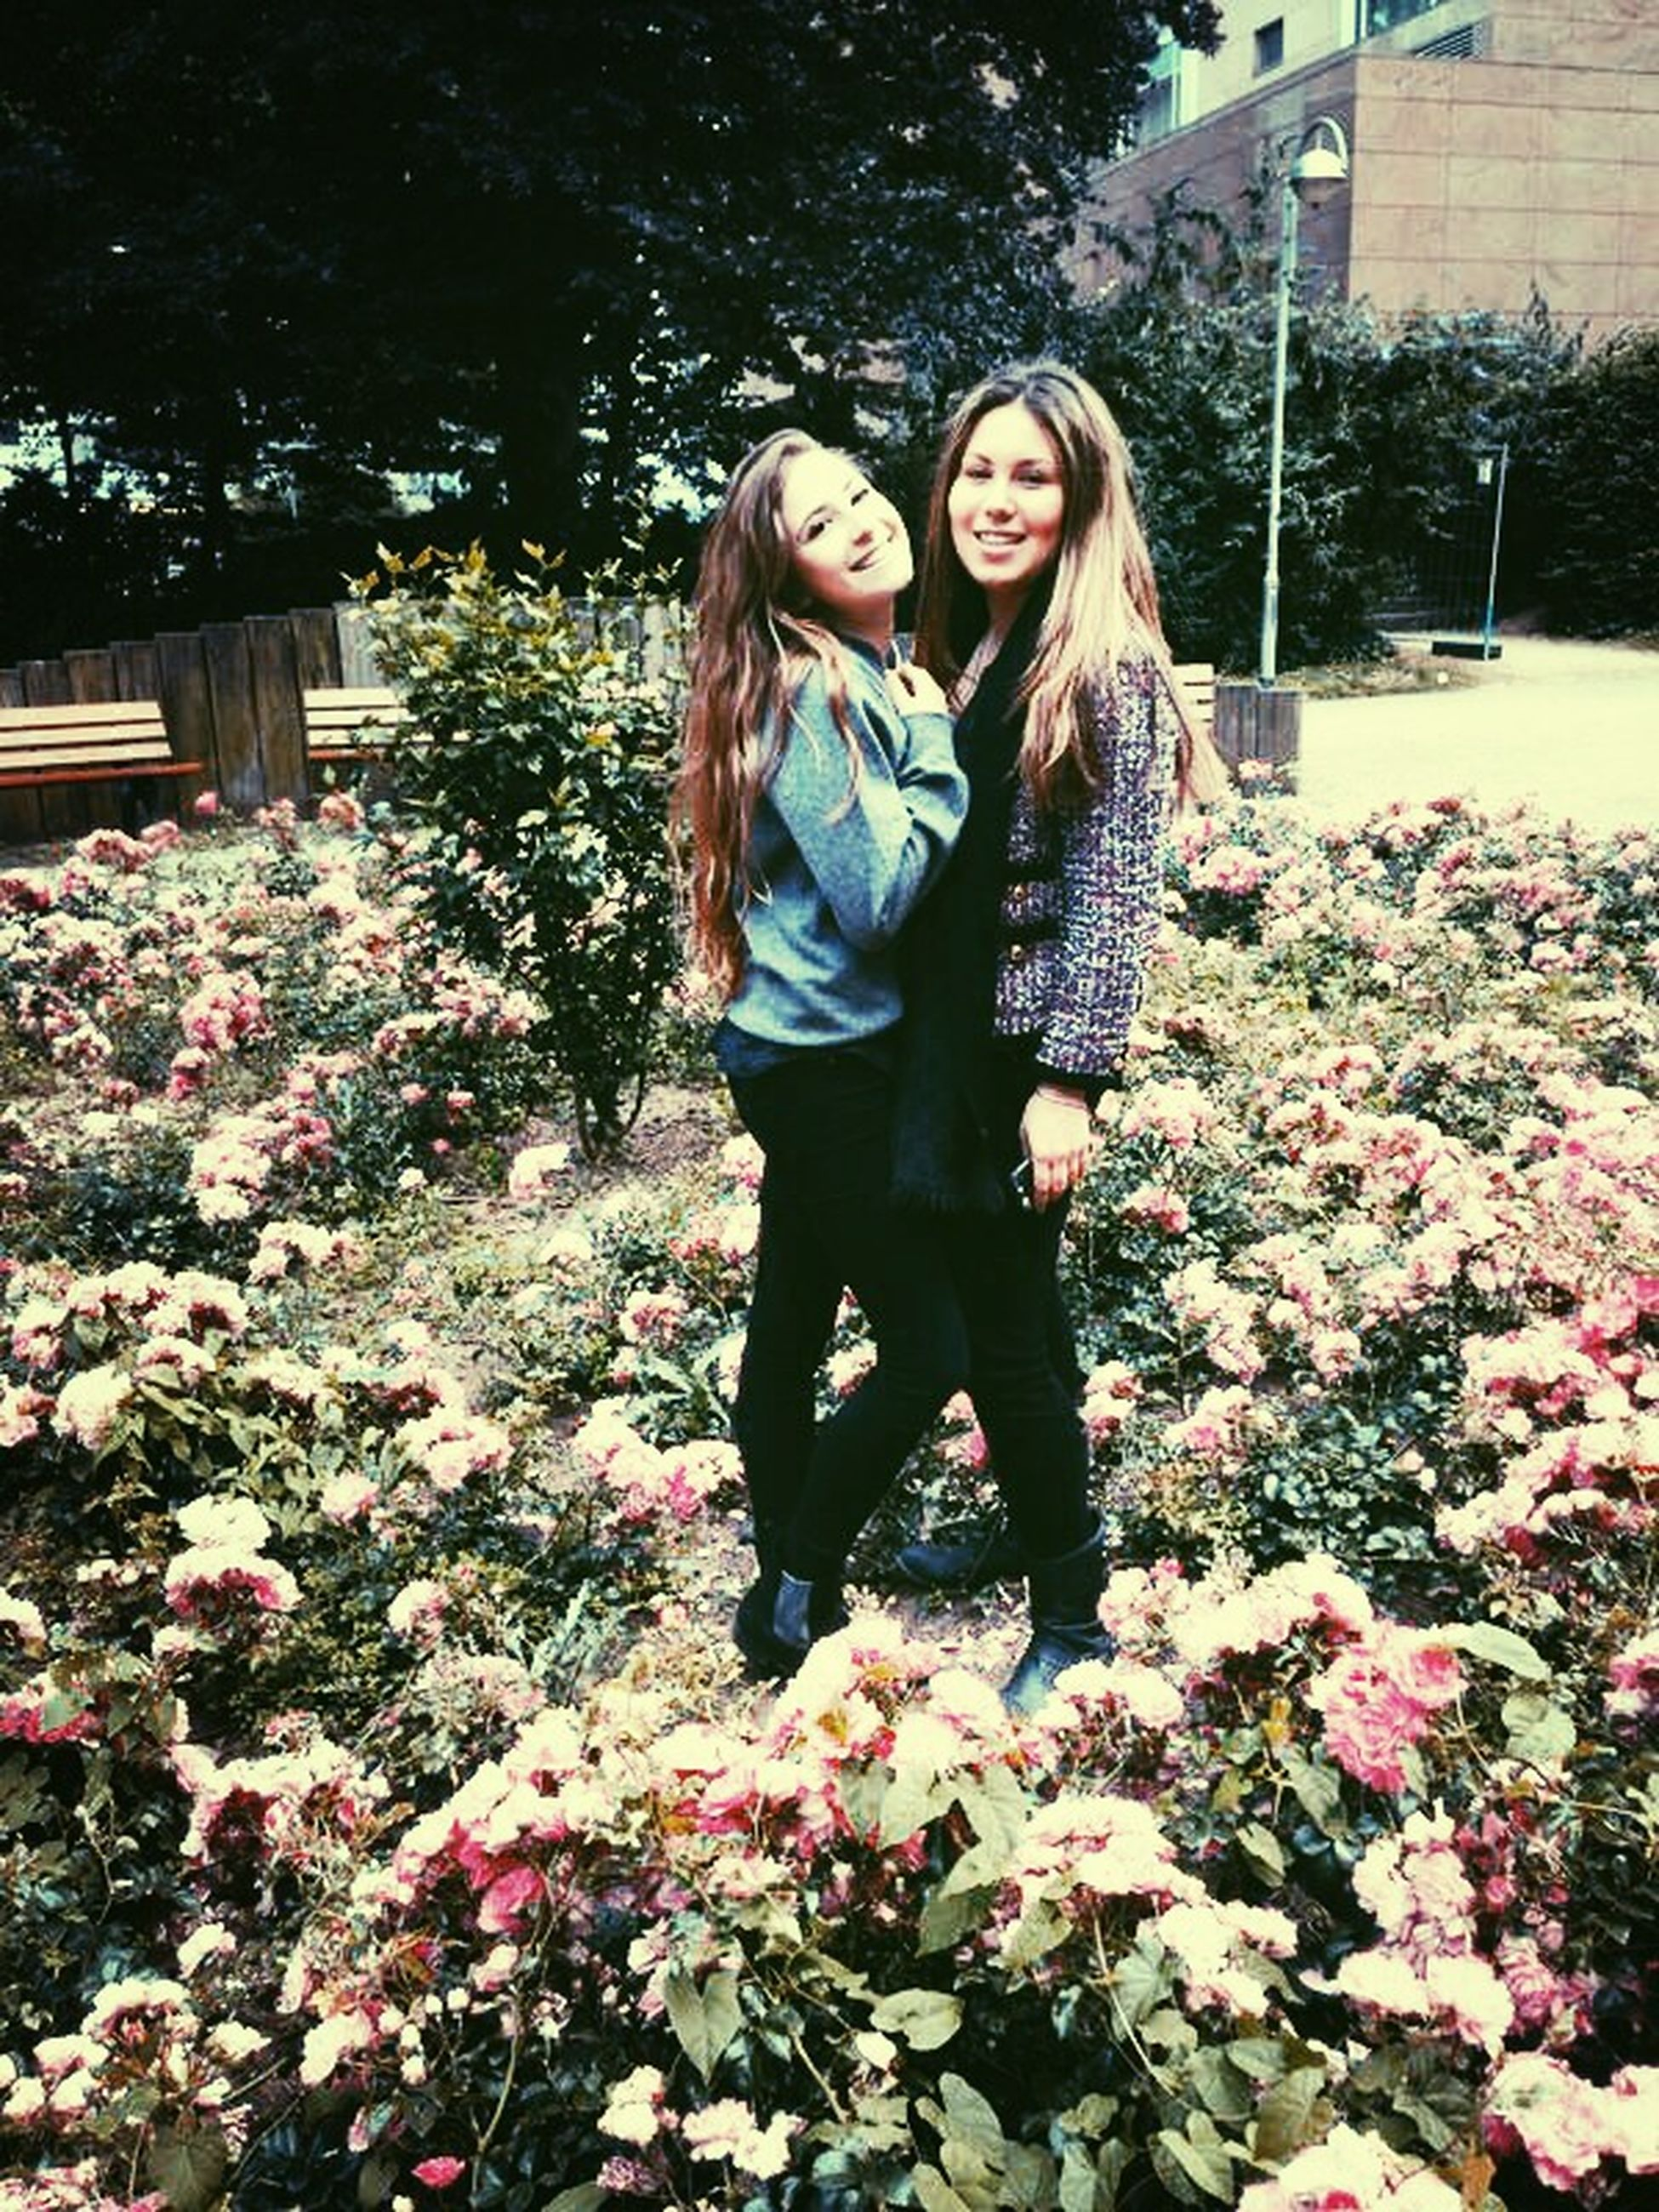 person, young adult, casual clothing, looking at camera, lifestyles, full length, flower, young women, portrait, smiling, leisure activity, standing, front view, happiness, three quarter length, plant, park - man made space